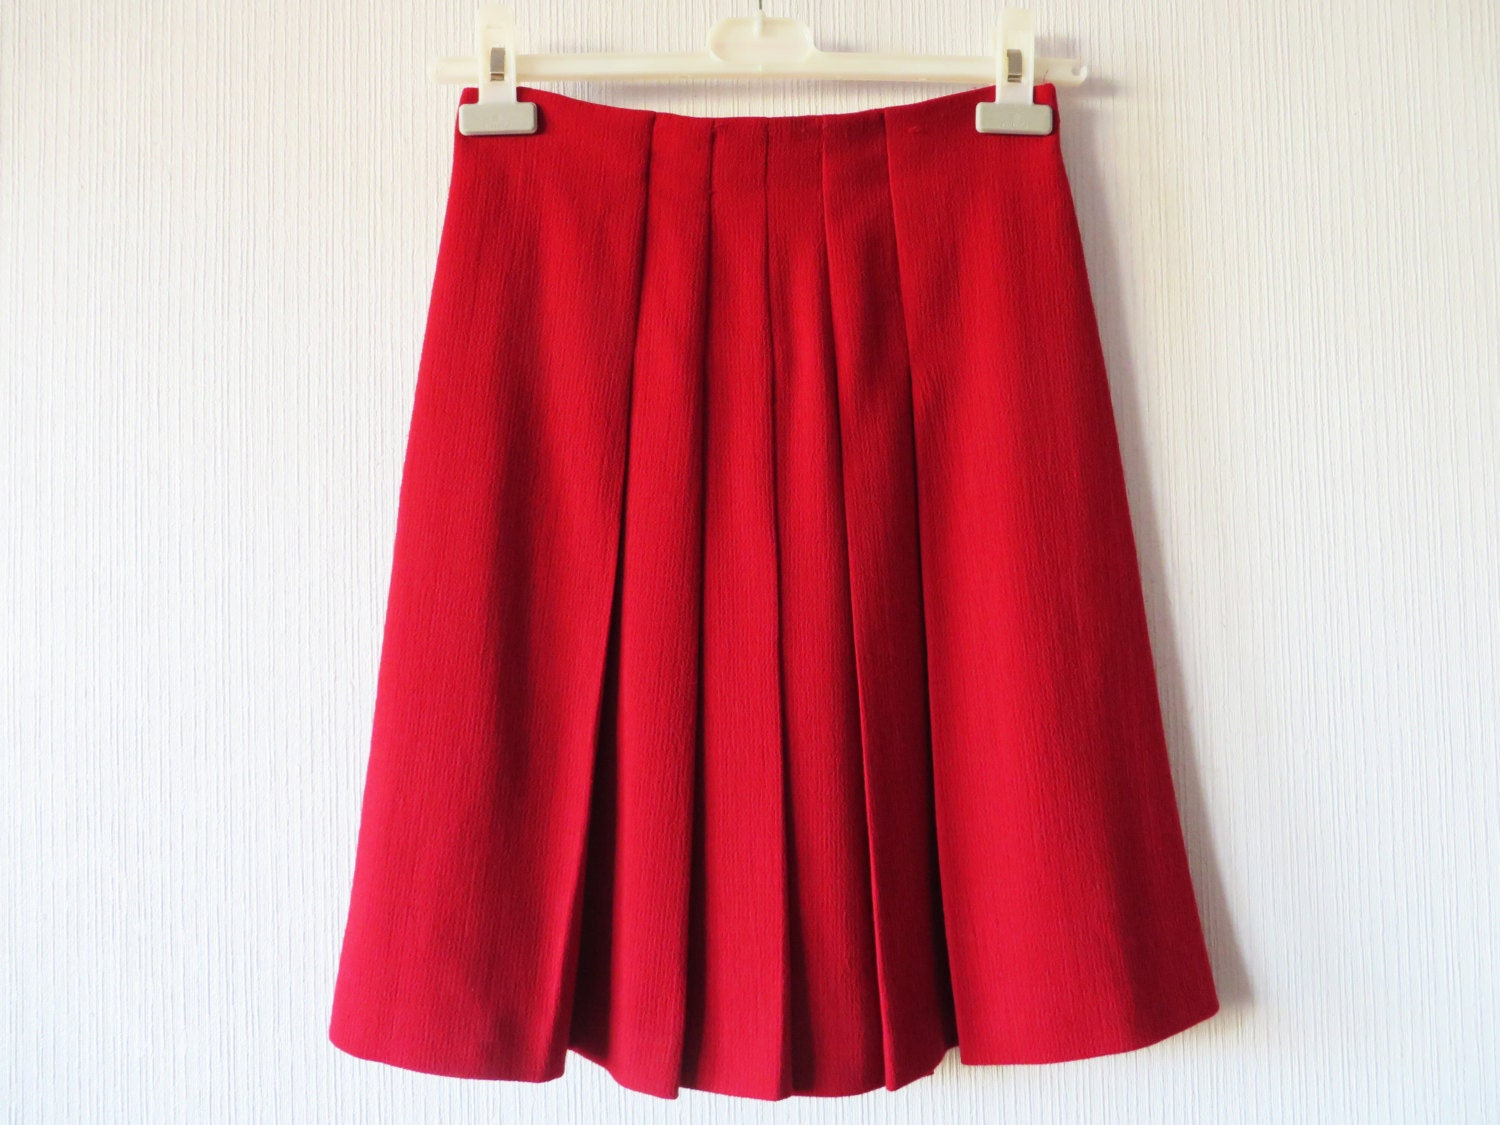 Mid-Rise Wool Pencil Skirt Details Lafayette New York stretch crepe skirt. Approx.